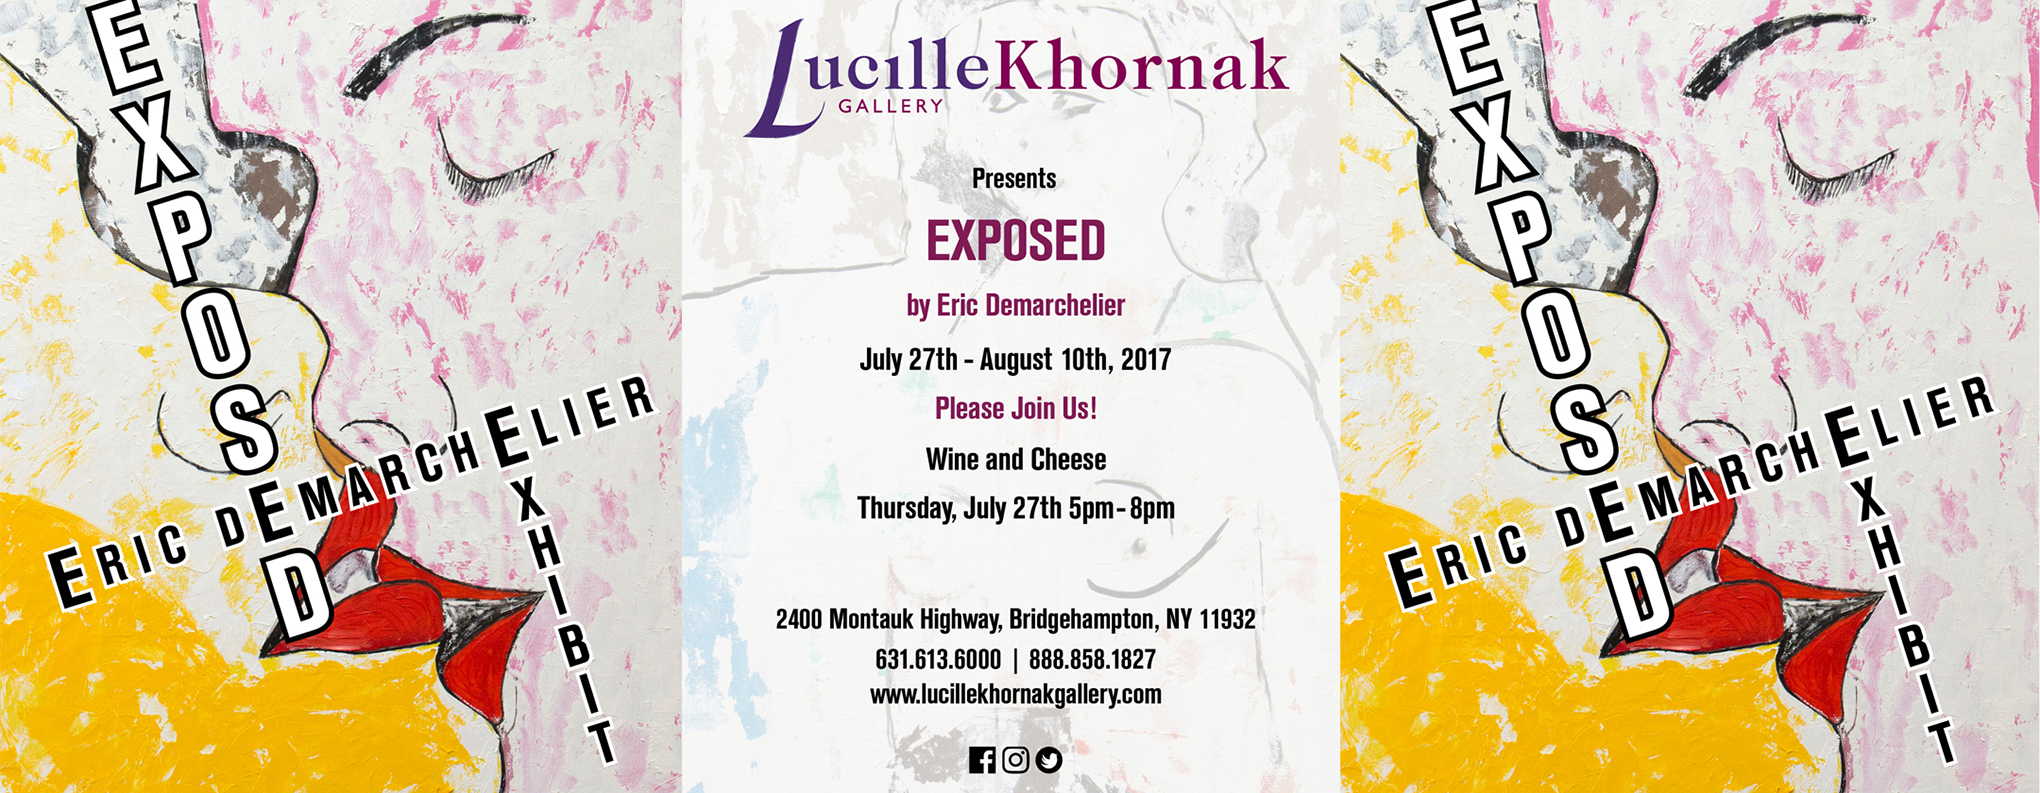 Lucille Khornak Gallery presents Exposed by Eric Demarchelier